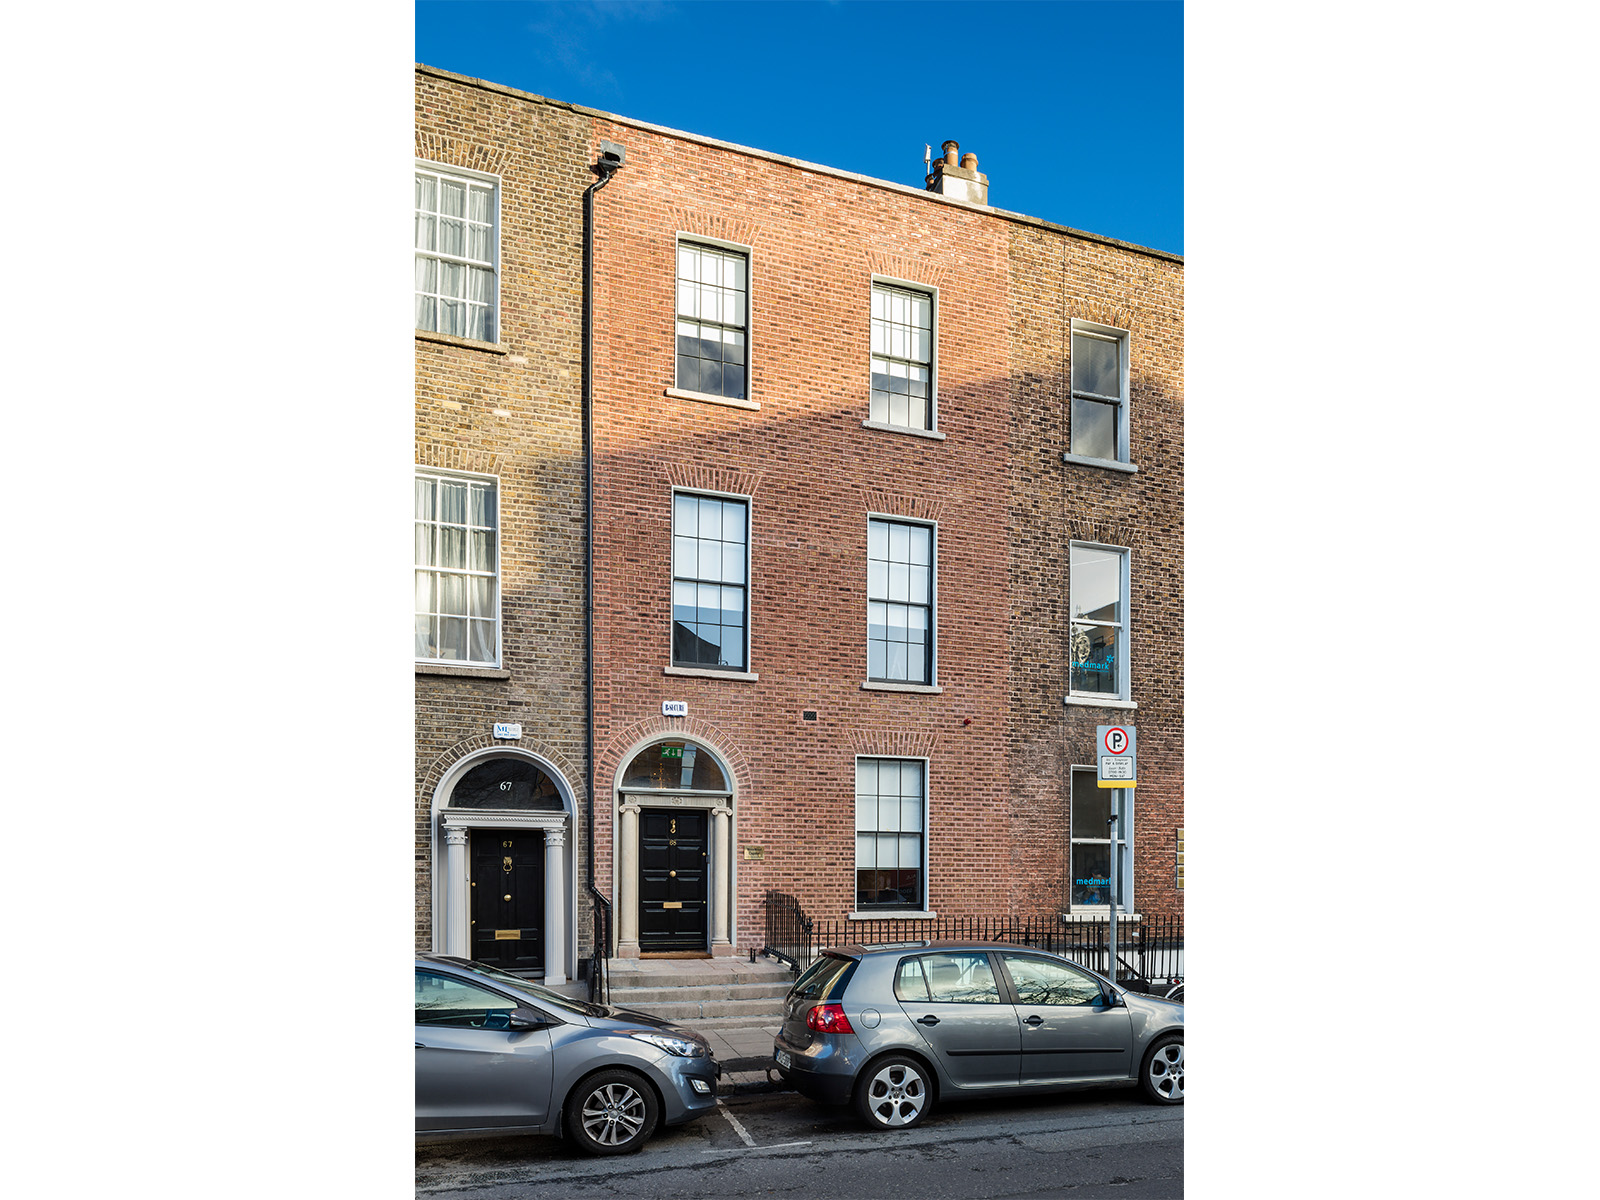 68 Lower Baggot Street